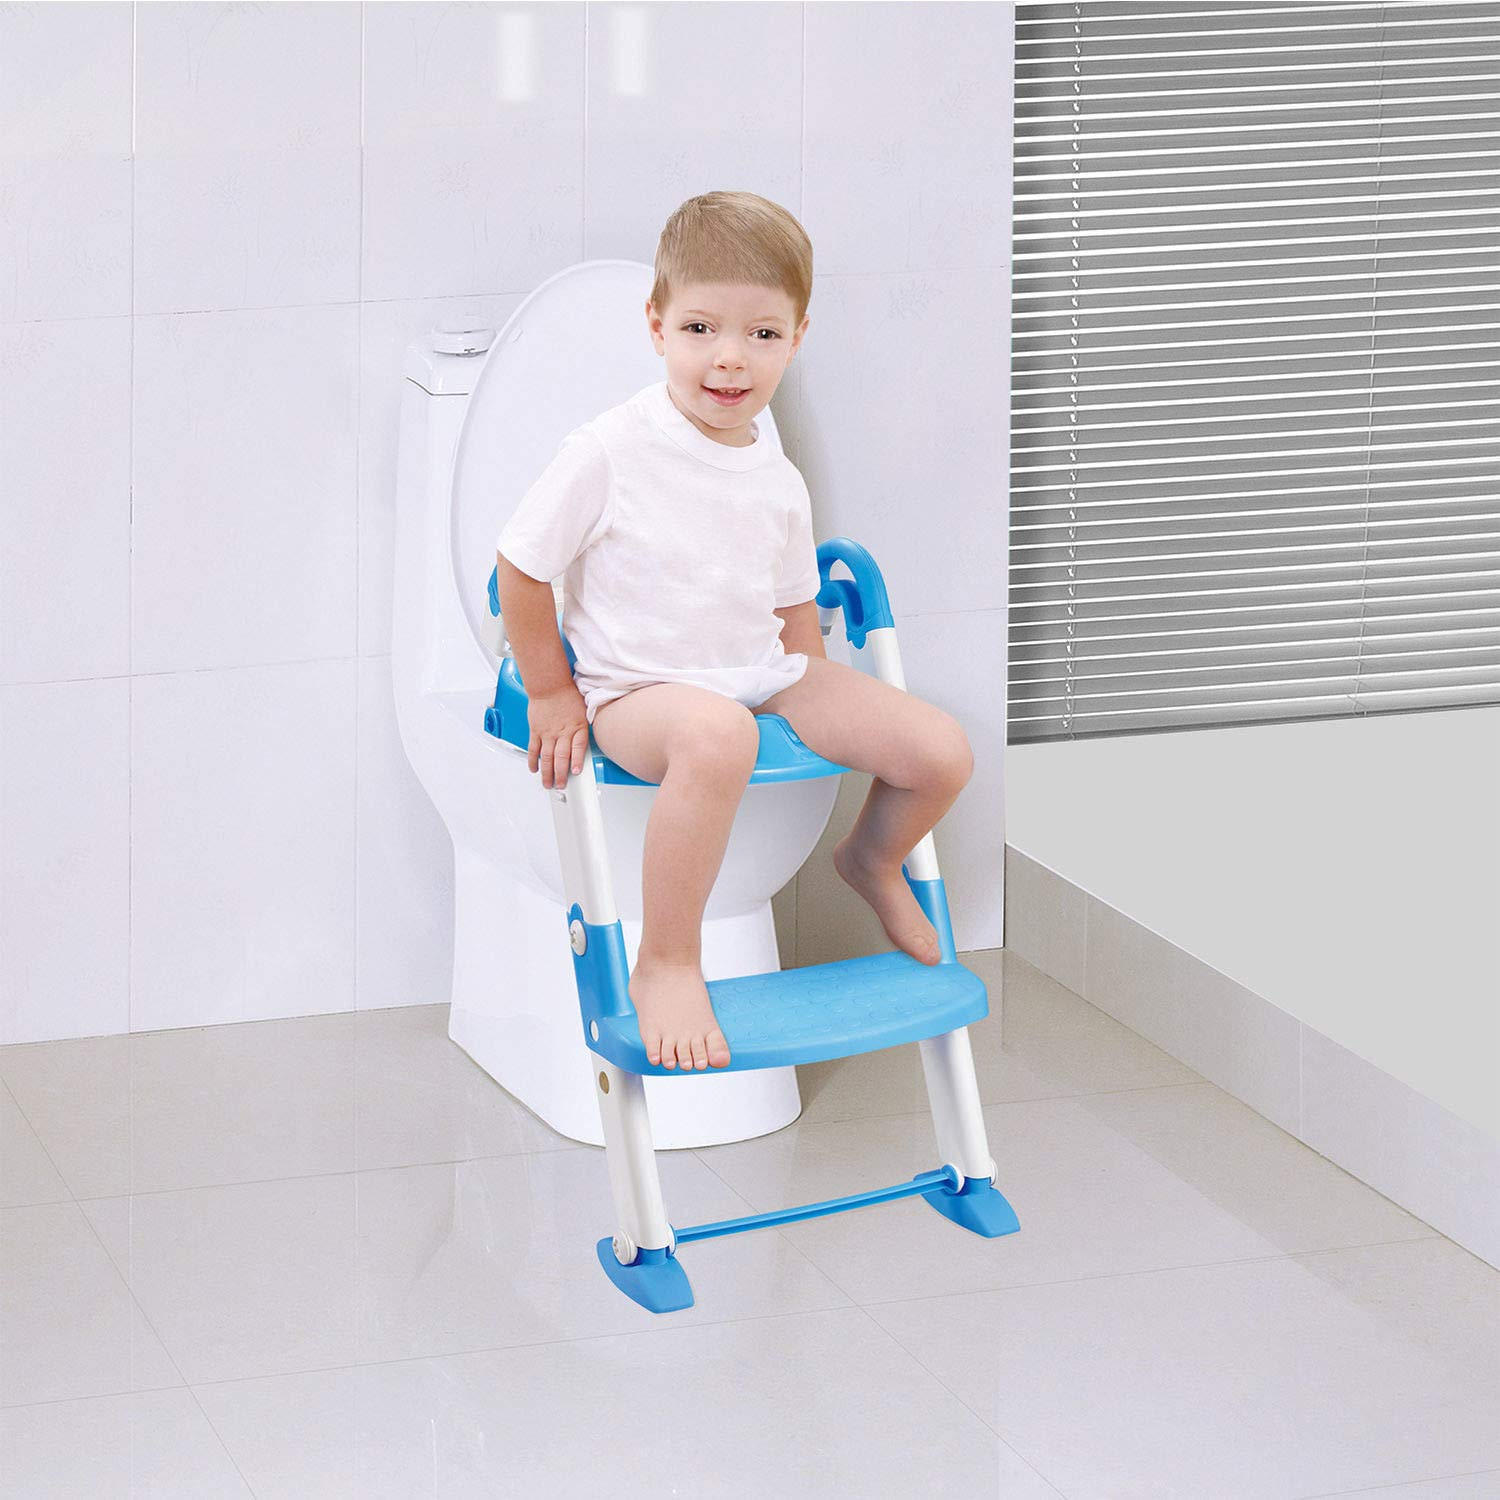 TOILET POTTY TRAINING BABY KIDS TRAINER SEAT CHAIR TODDLER LADDER STEP UP STOOL REMOVABLE BASIN COMFORTABLE BACKREST AND ARMREST DESIGN